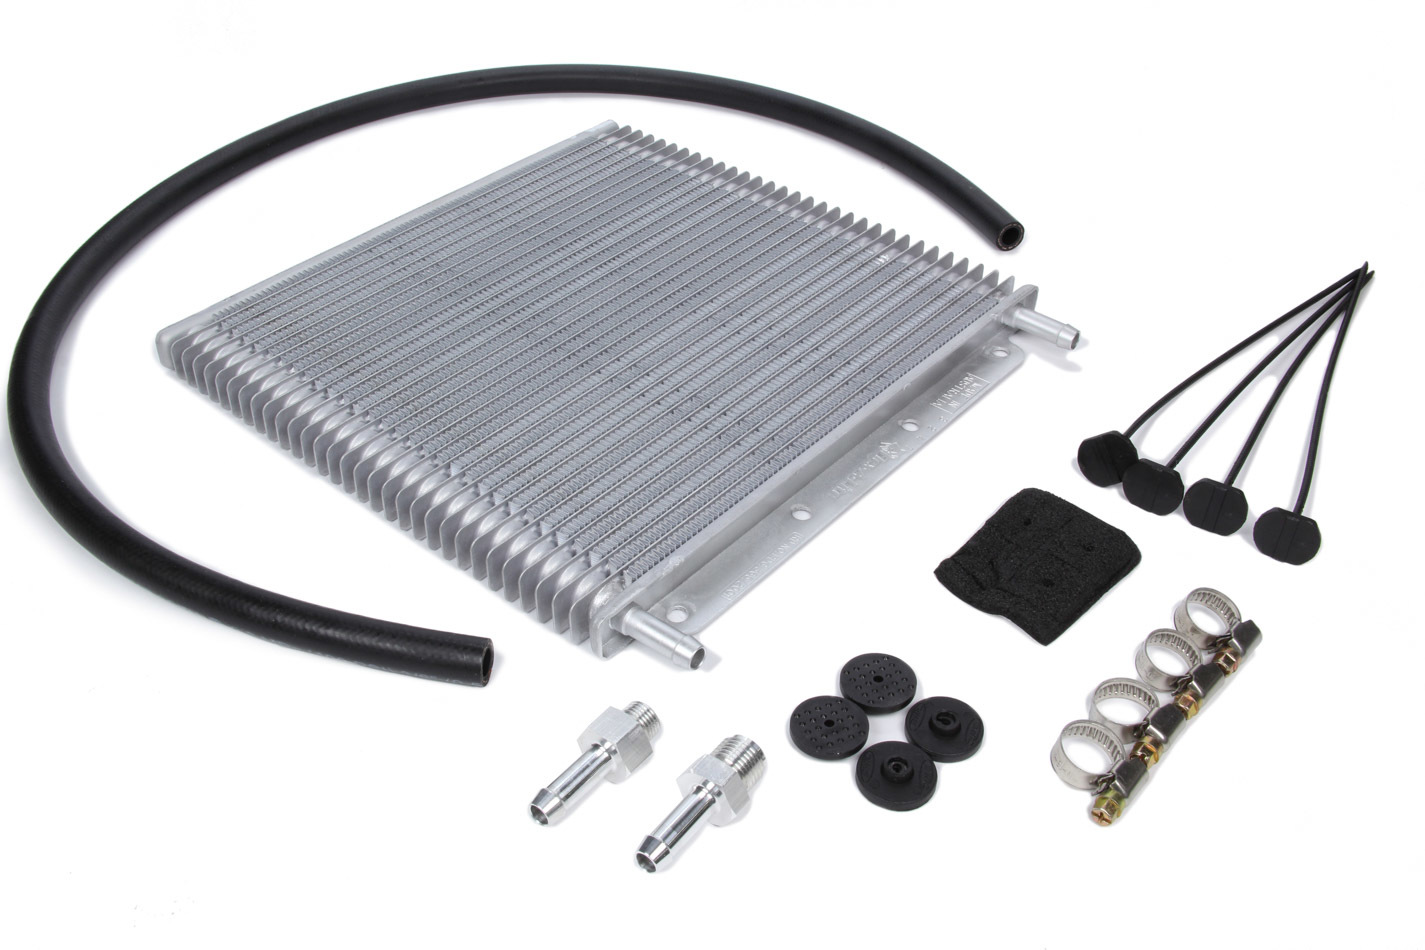 Flex-A-Lite 400130 Fluid Cooler, 10 x 11 x 3/4 in, Plate and Fin Type, 30 Row, 3/8 in Hose Barb Inlet / Outlet, Fittings / Hardware / Hose, Aluminum, Natural, Universal, Kit